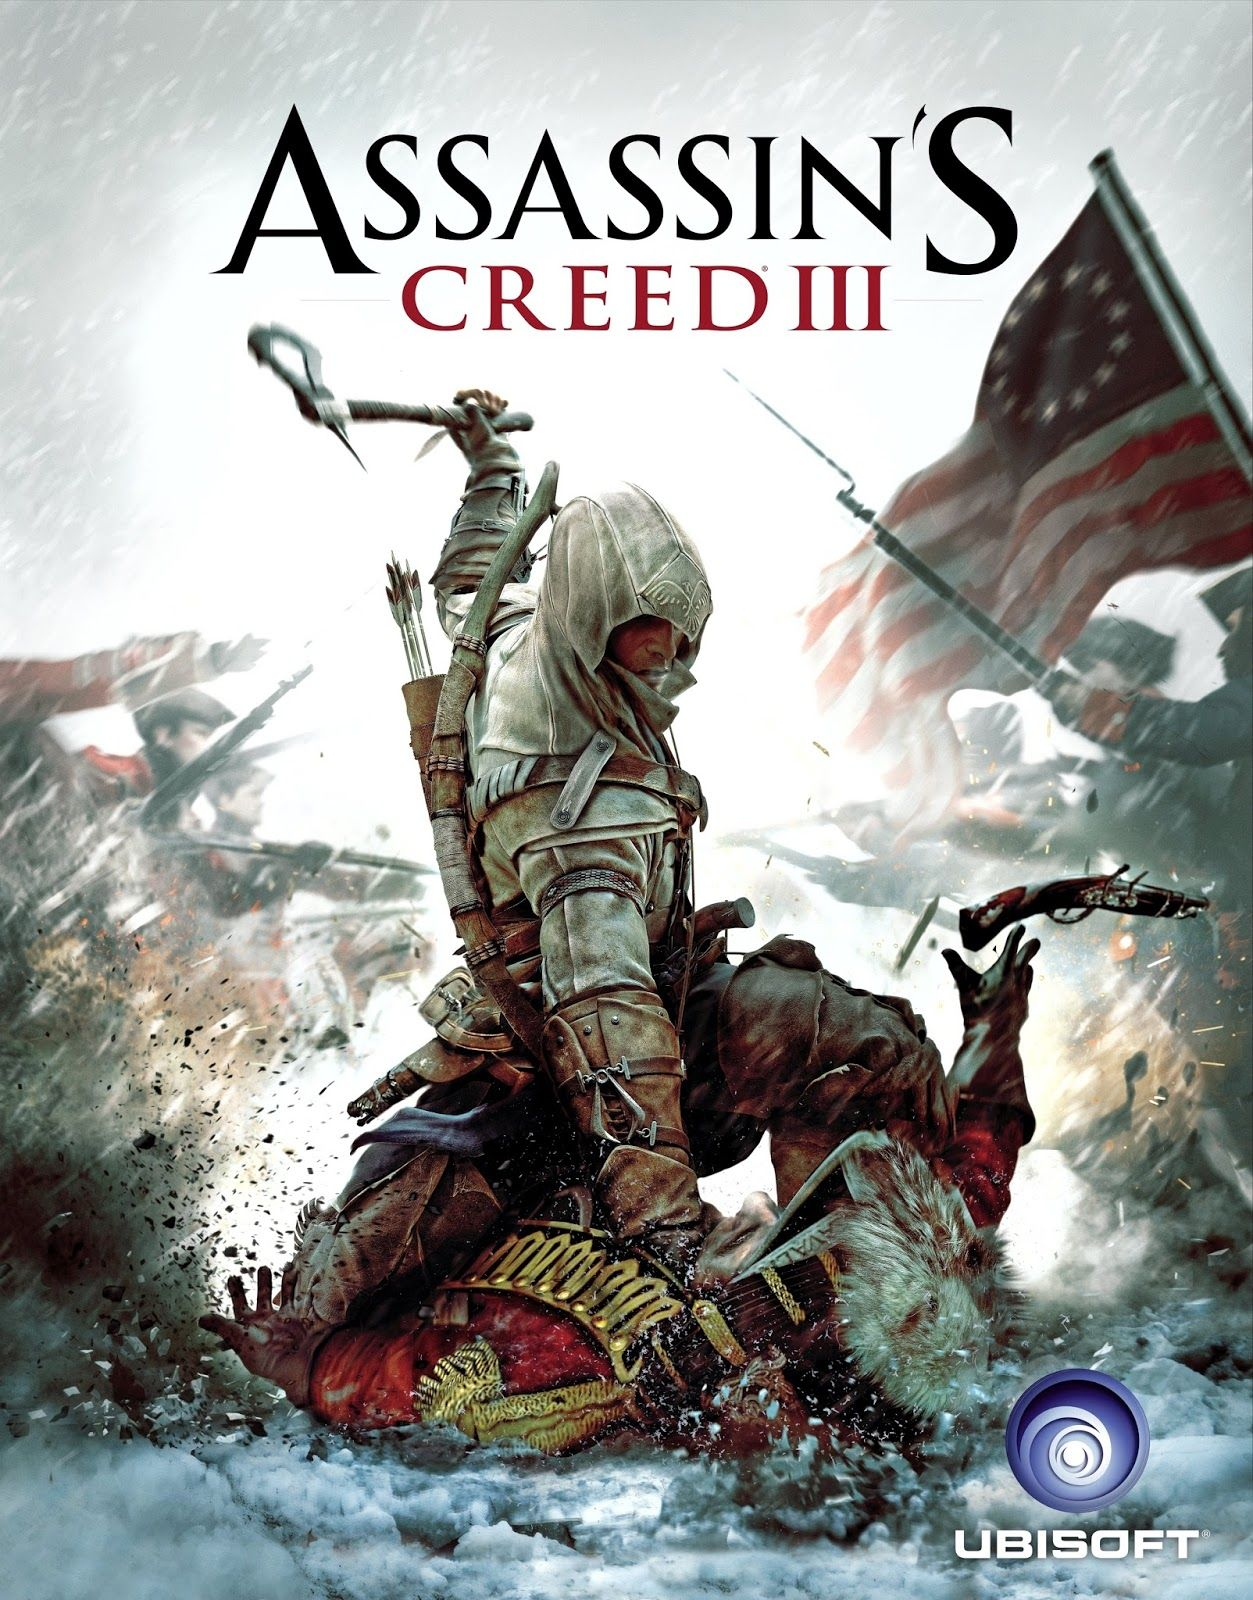 Assassins Creed 3 Full Game Free Download For PC New